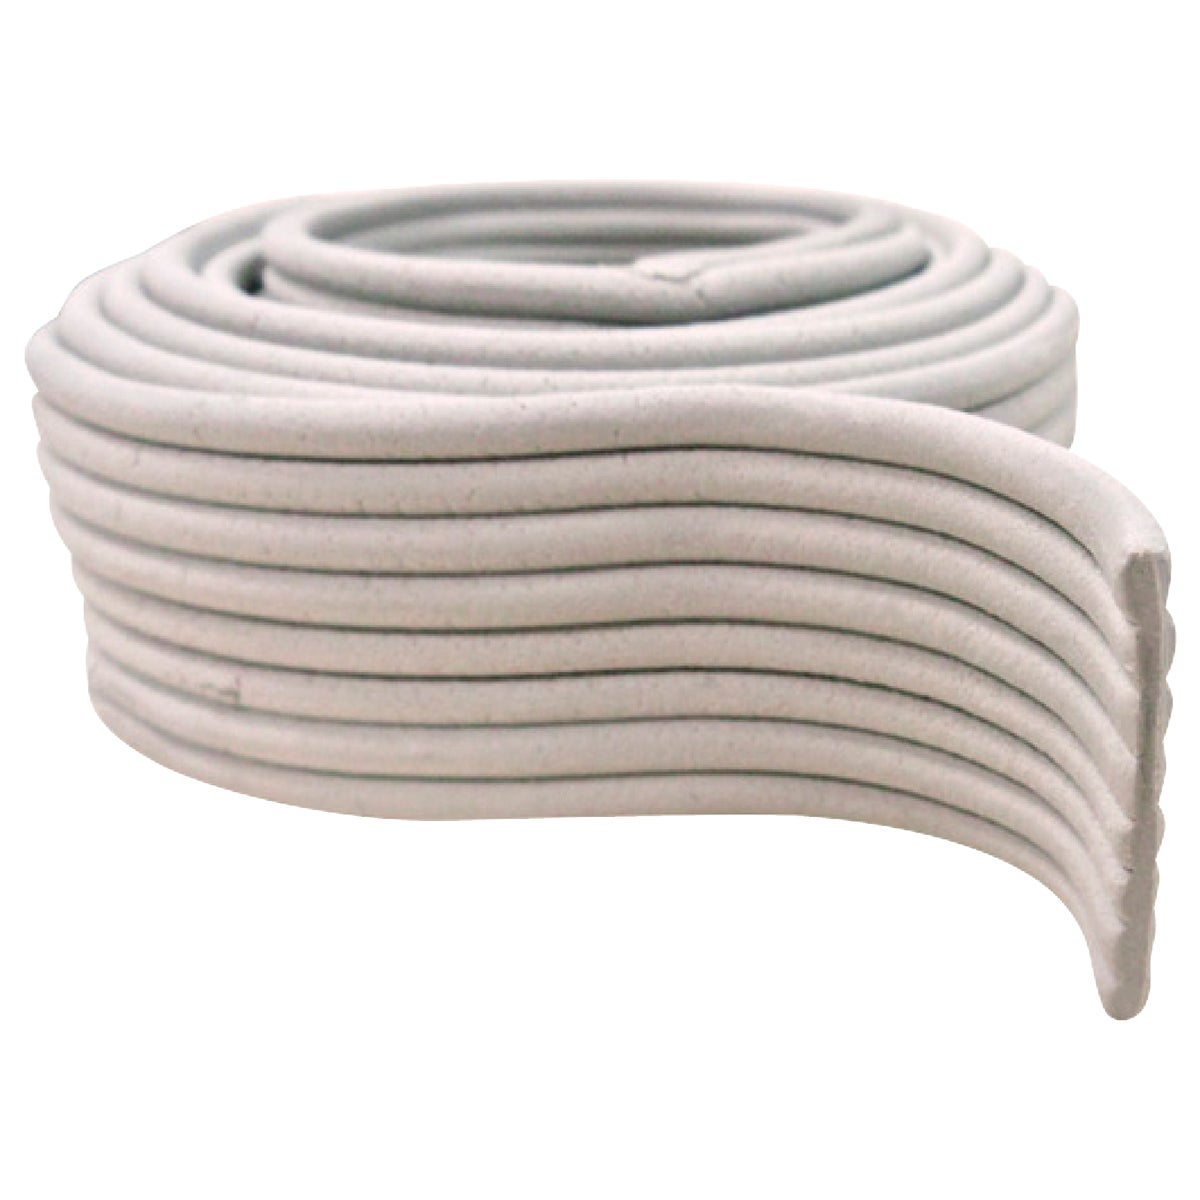 90' GRAY CAULKING CORD